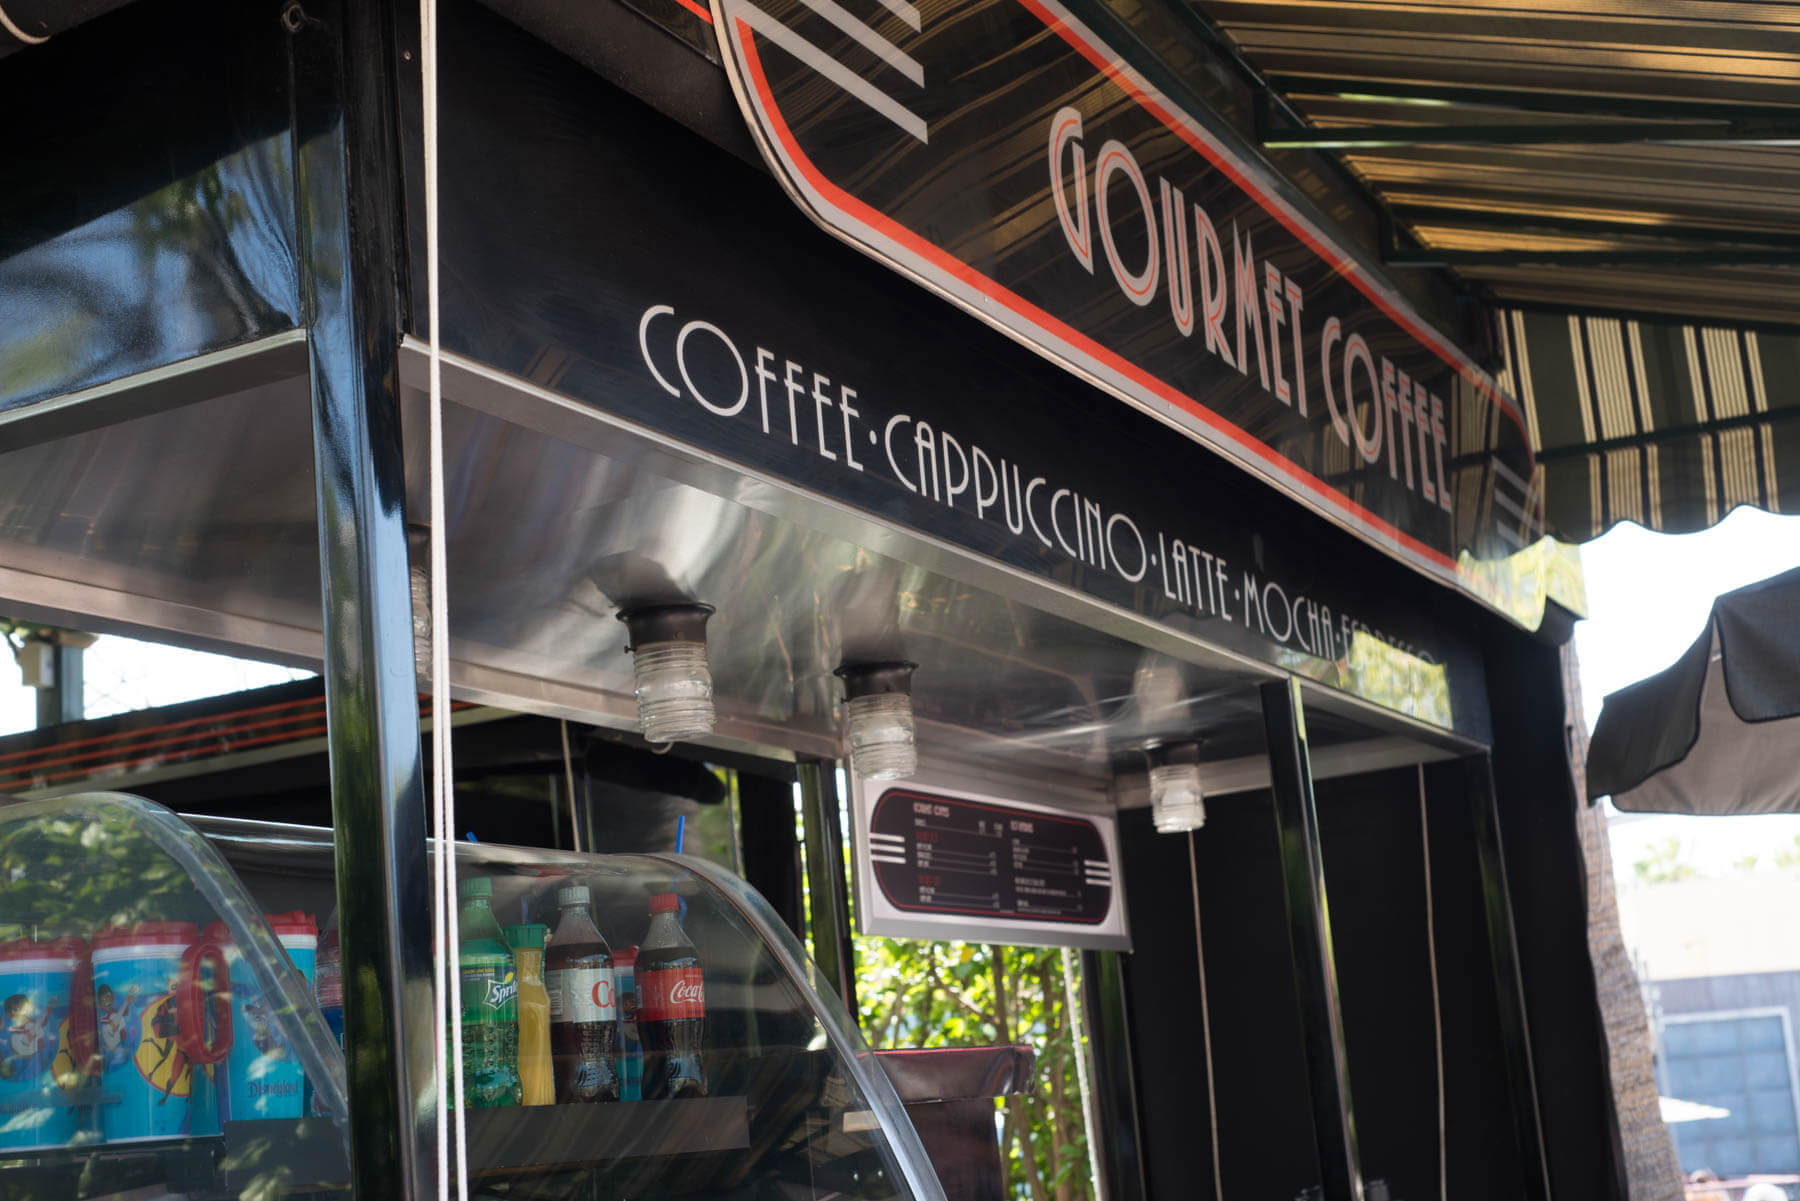 Gourmet Cappuccino Cart near Pixar Pier in California Adventure | Where to Find Good Coffee at Disneyland